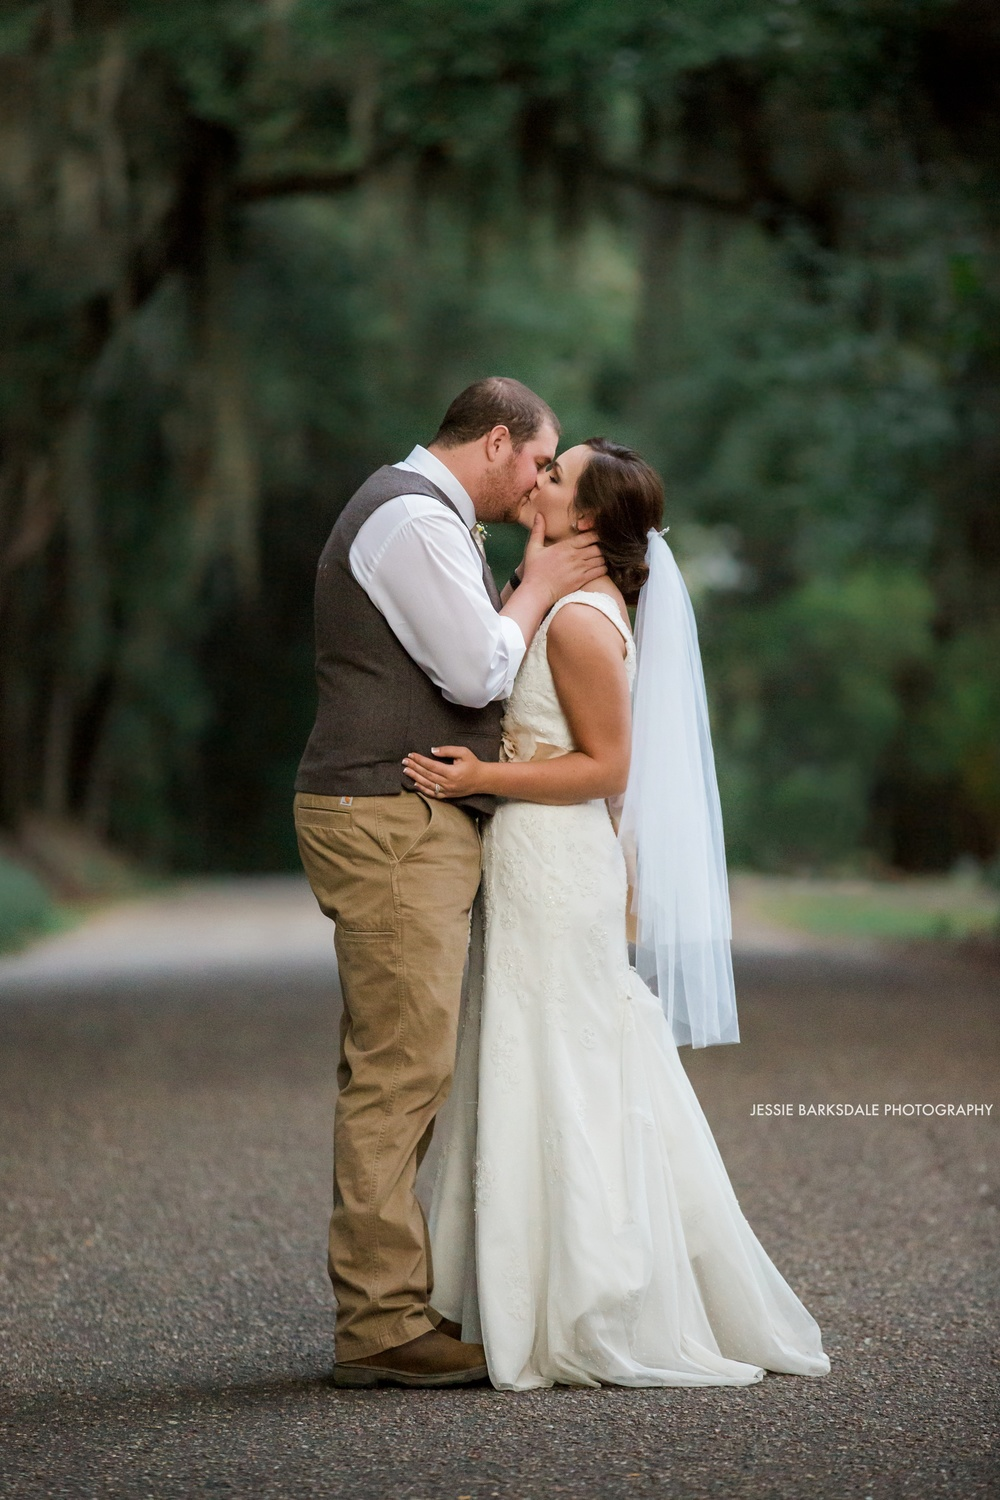 Jessie Barksdale_Elms Coosada_Plantation Home_Moss Mossy Trees_Bride and Groom Kiss_Fall Wedding Inspiration_Birmingham Montgomery Alabama Atlanta Selma Wedding Photographer